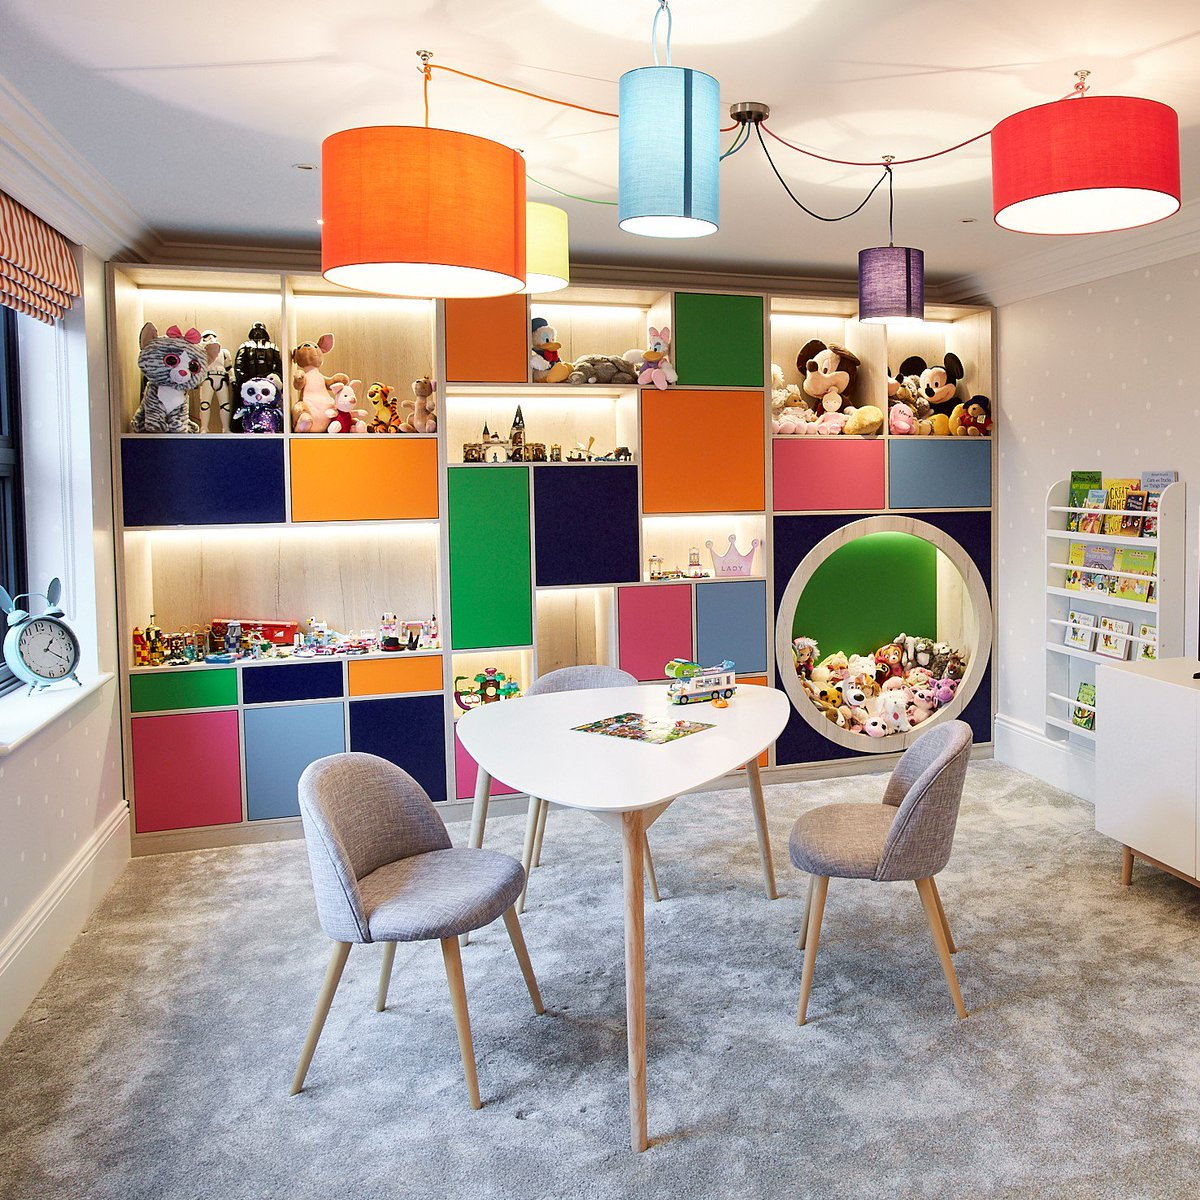 Durable Playroom